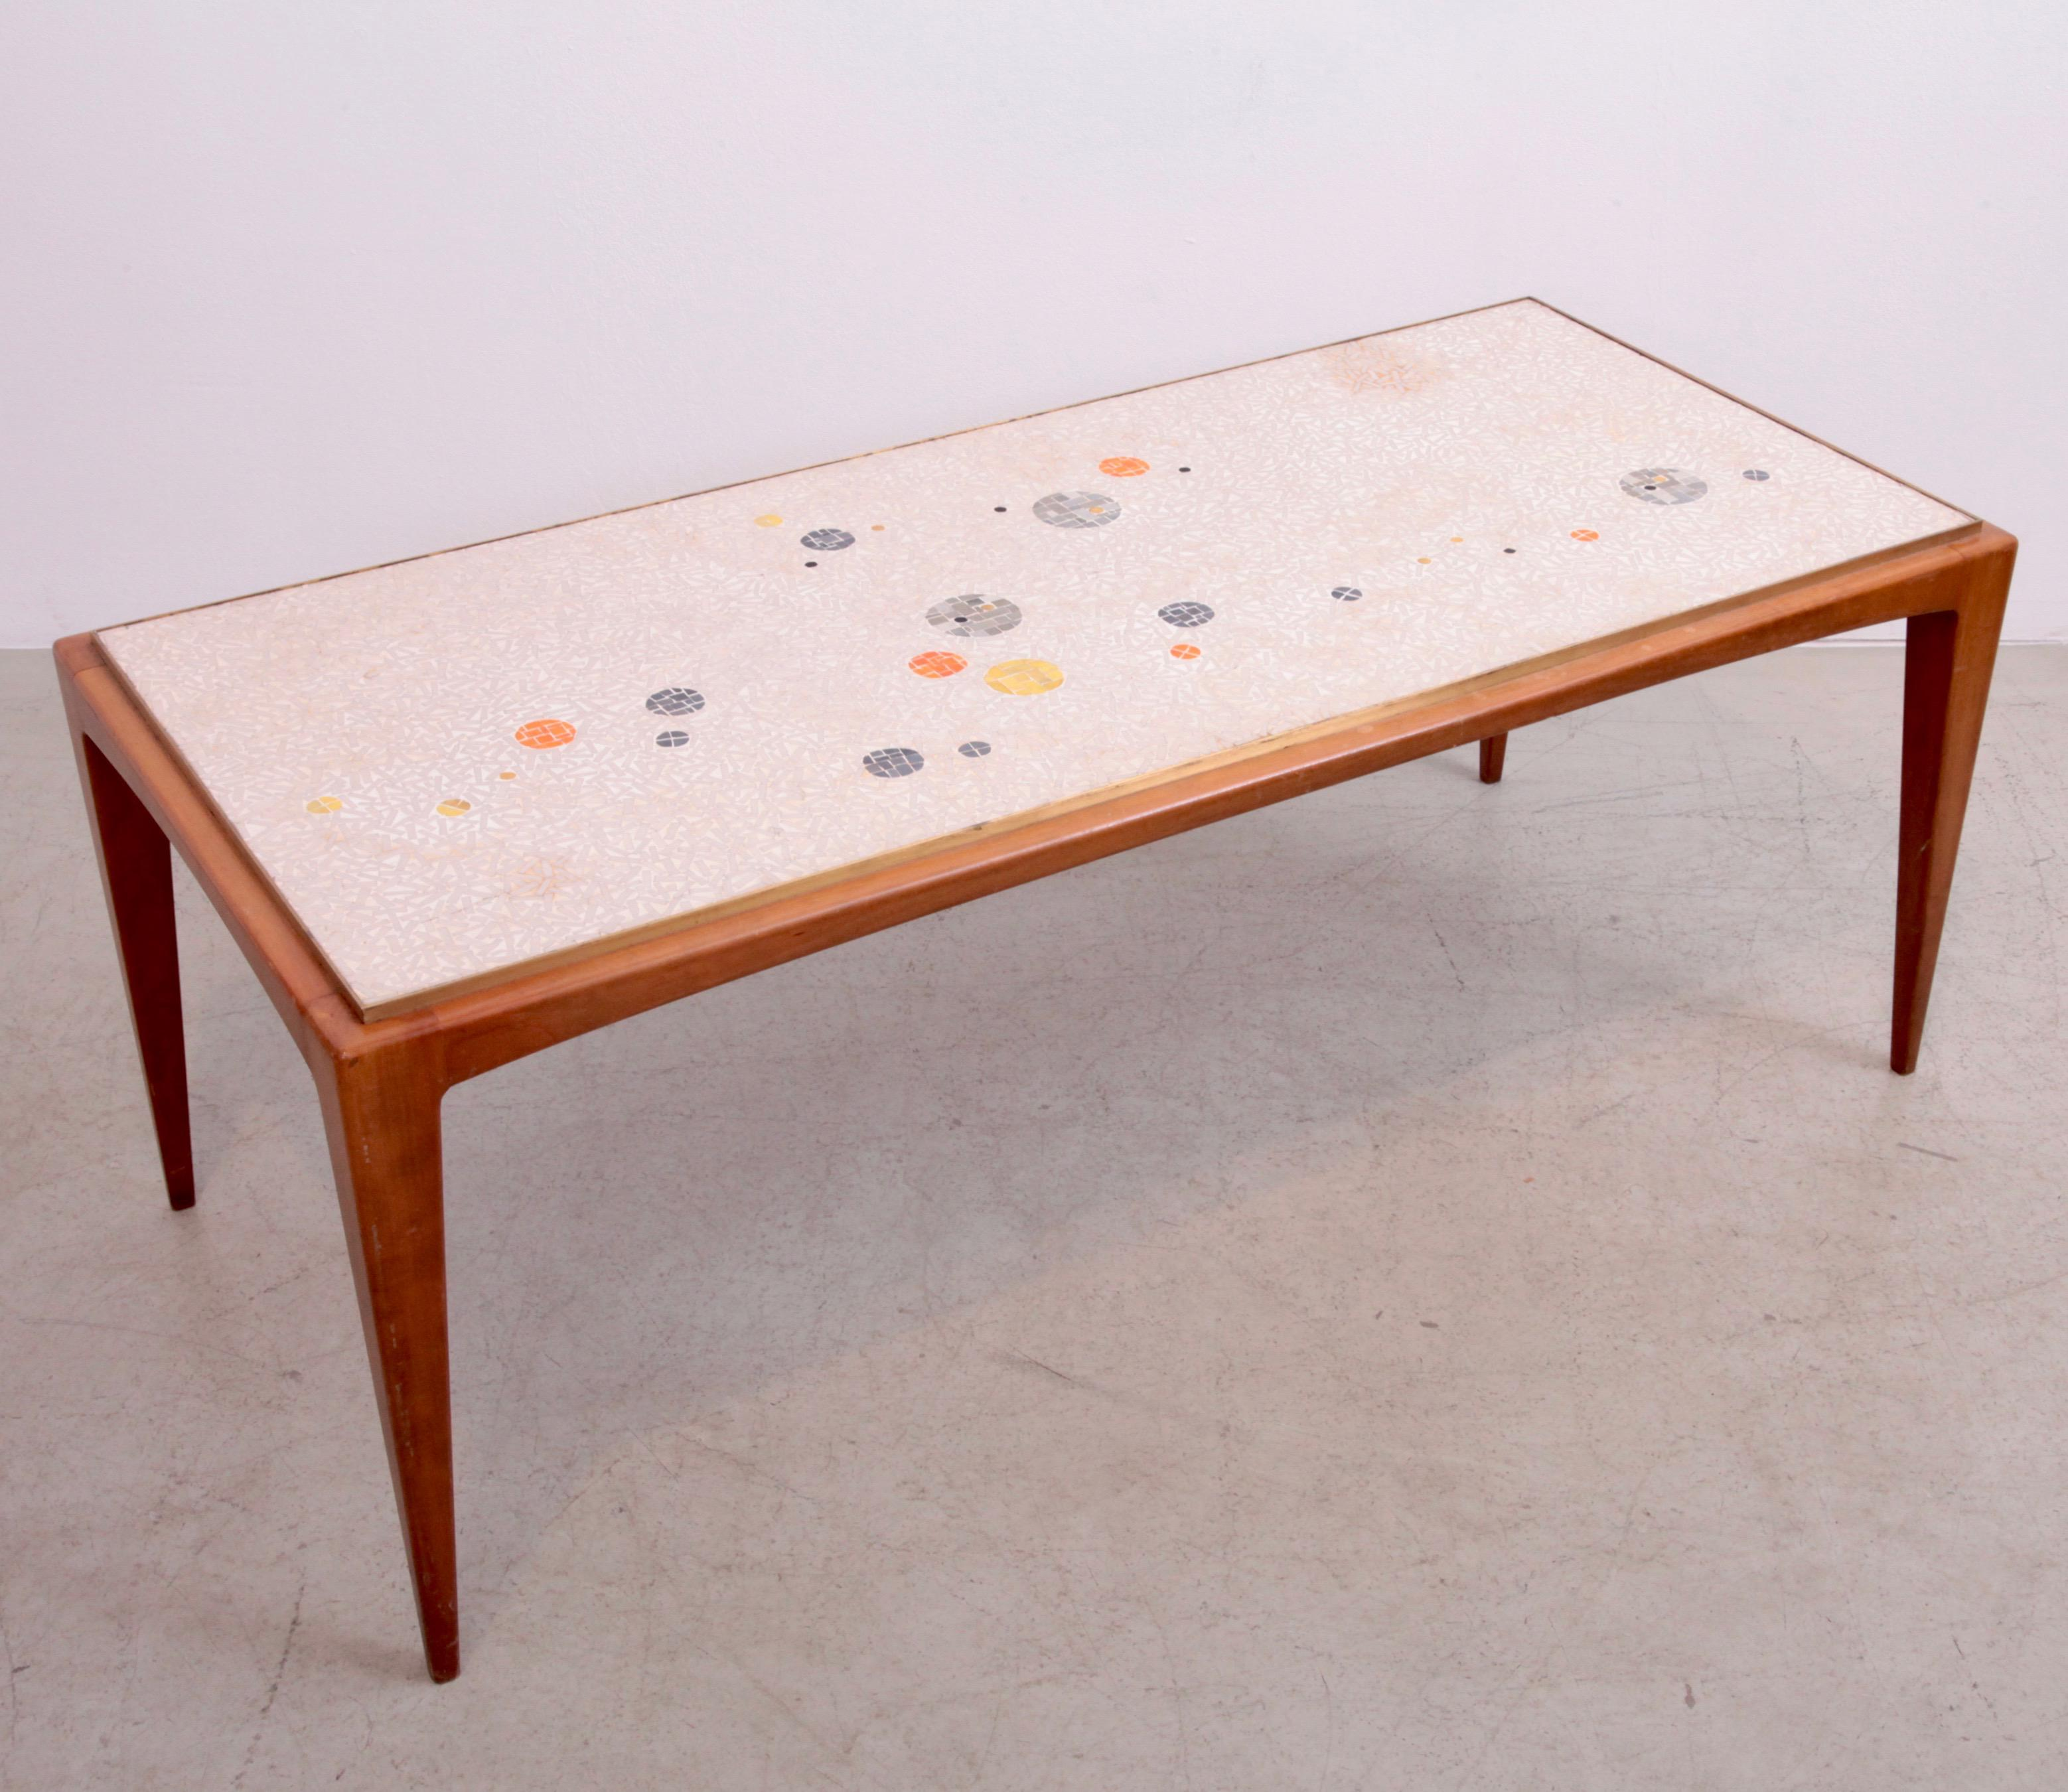 Signed Berthold Muller Mosaic Coffee Table On Wood Base, Germany, 1958